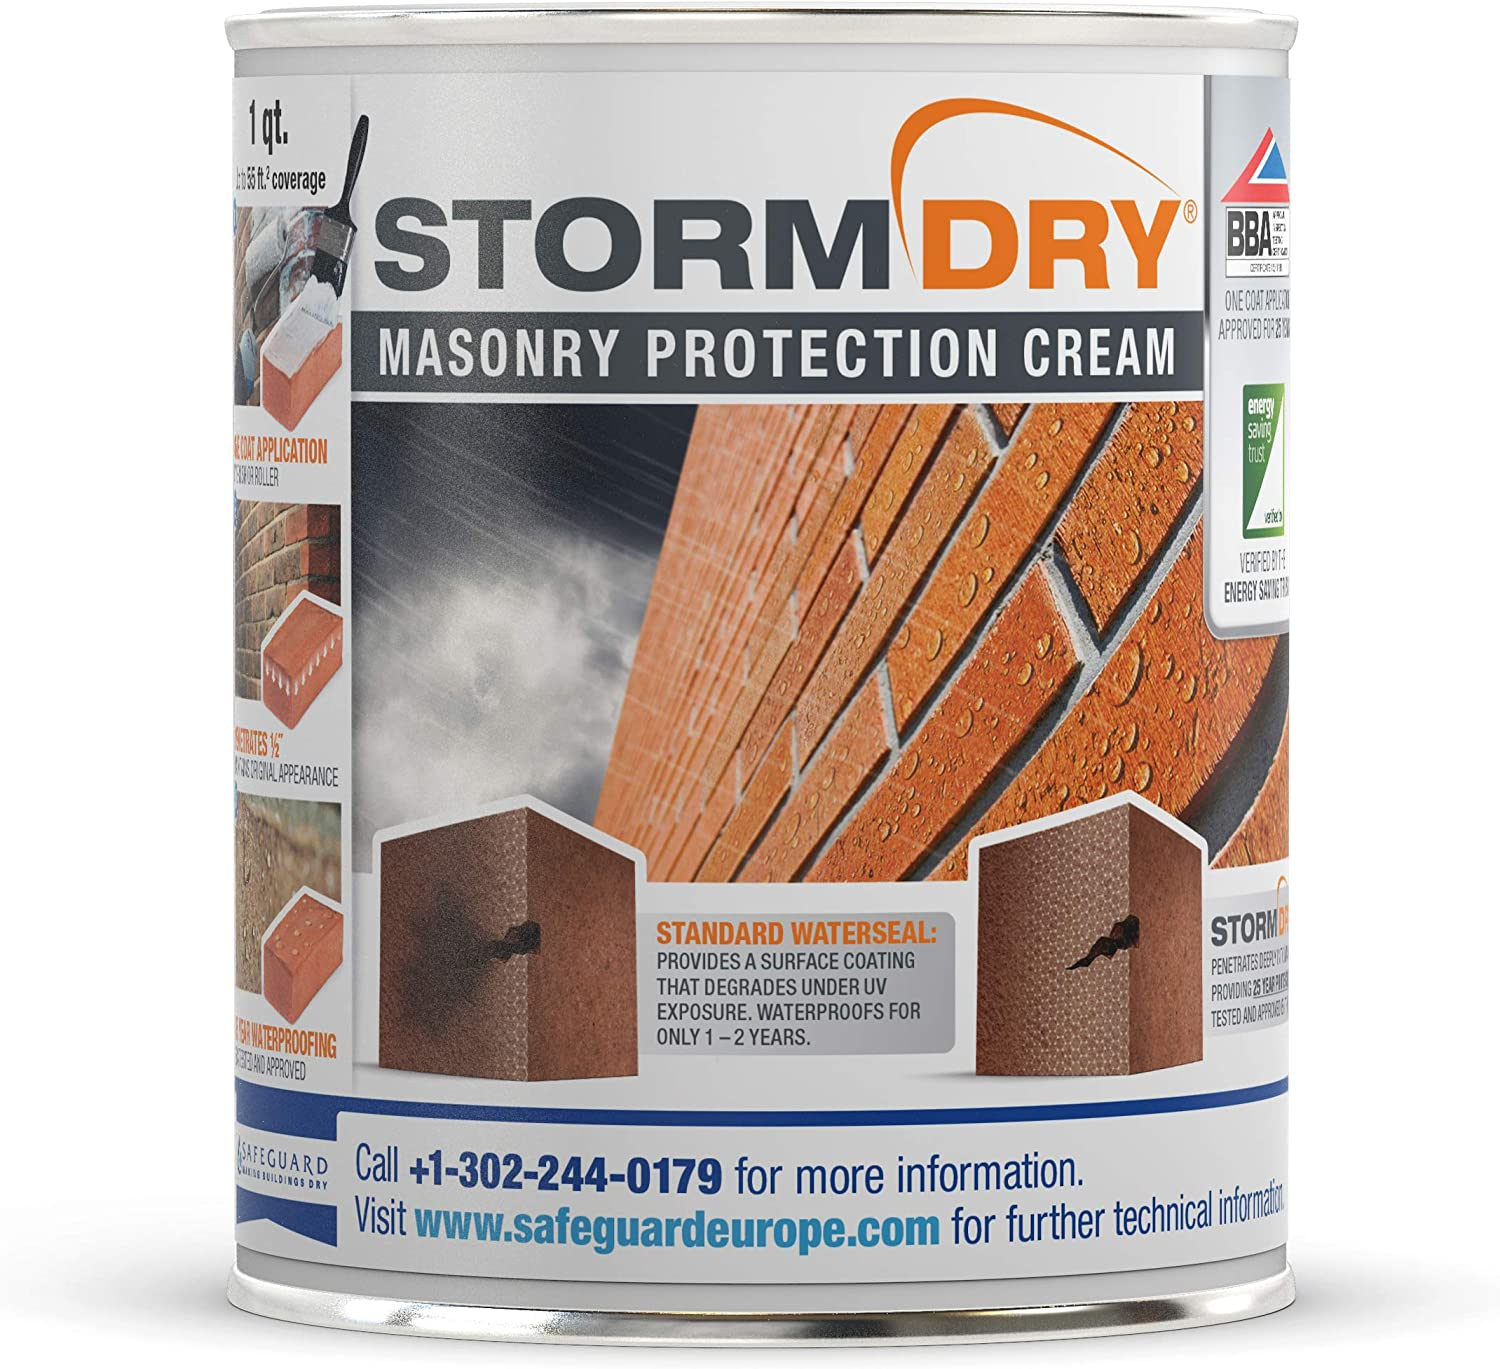 Stormdry Masonry Protection Cream (1 Quart) Certified Brick, Stone, Mortar, Render and Masonry Waterproofer - Proven 25 Year Protection Against Penetrating Damp